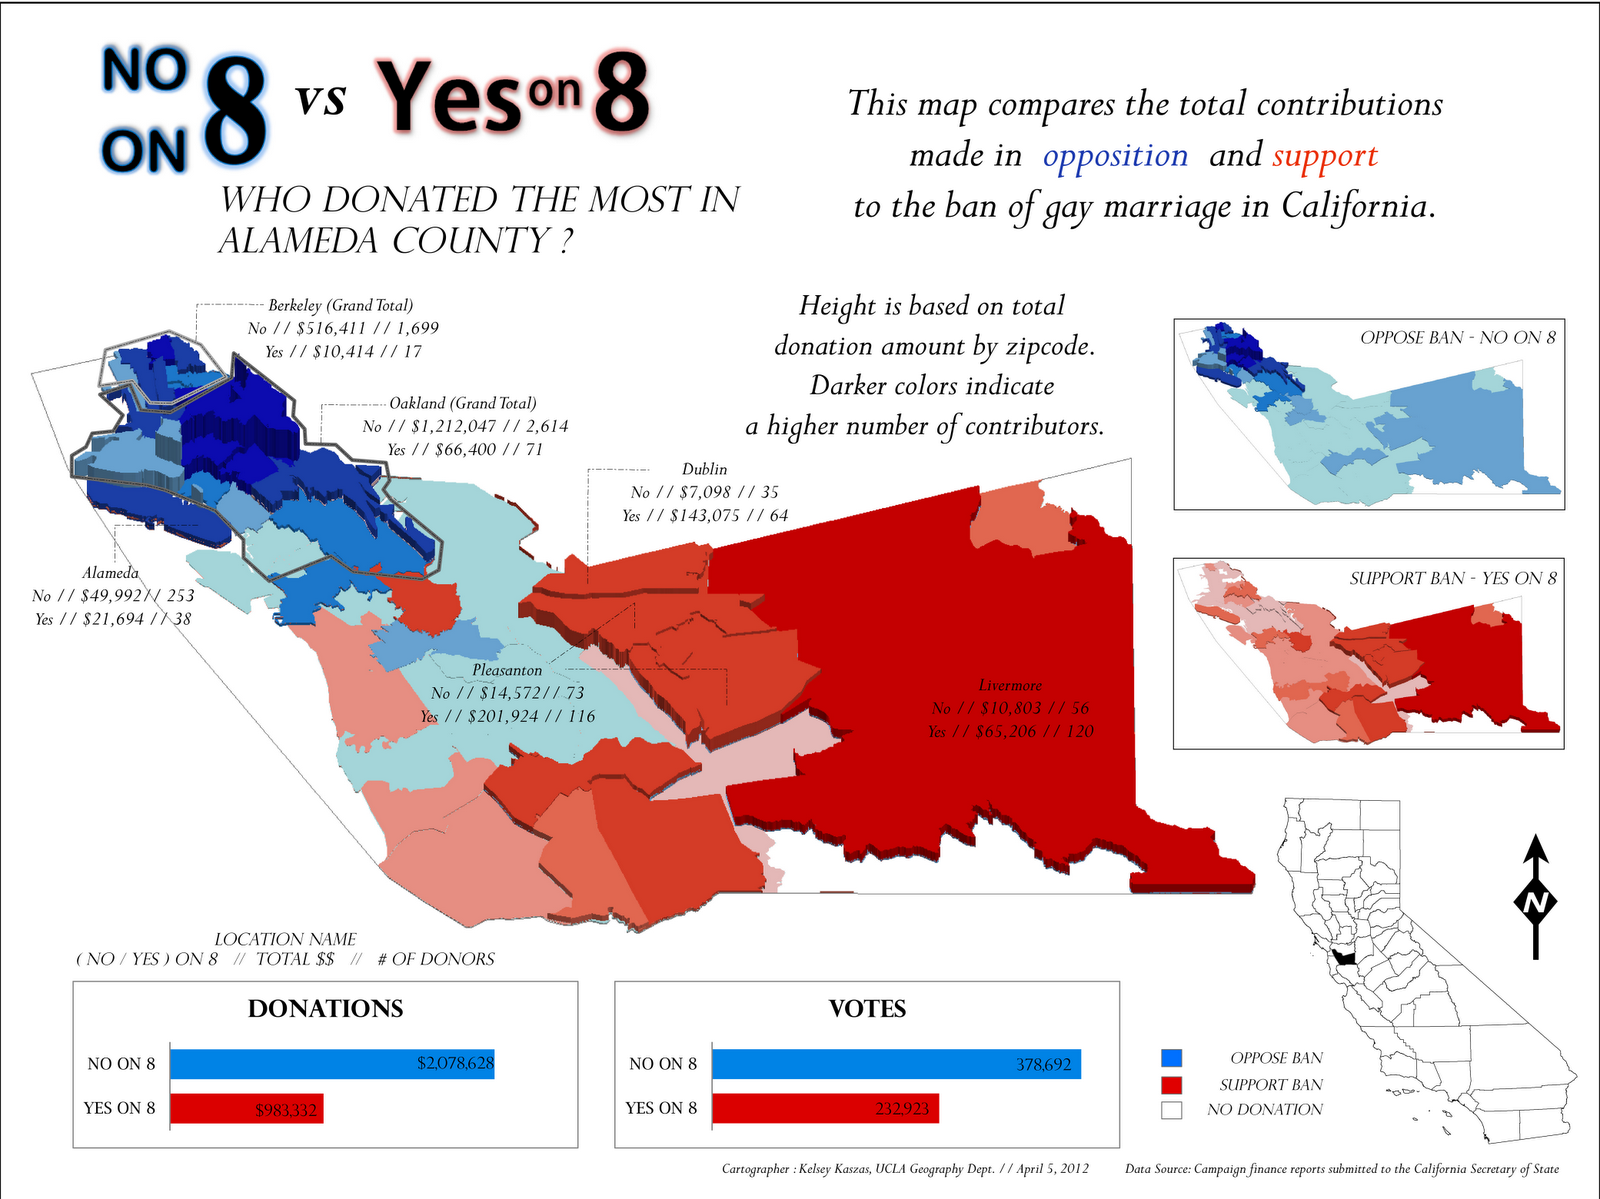 the donation and voting data show that sacramento county is predominantly against marriage equality the largest amount of money donated to no on 8